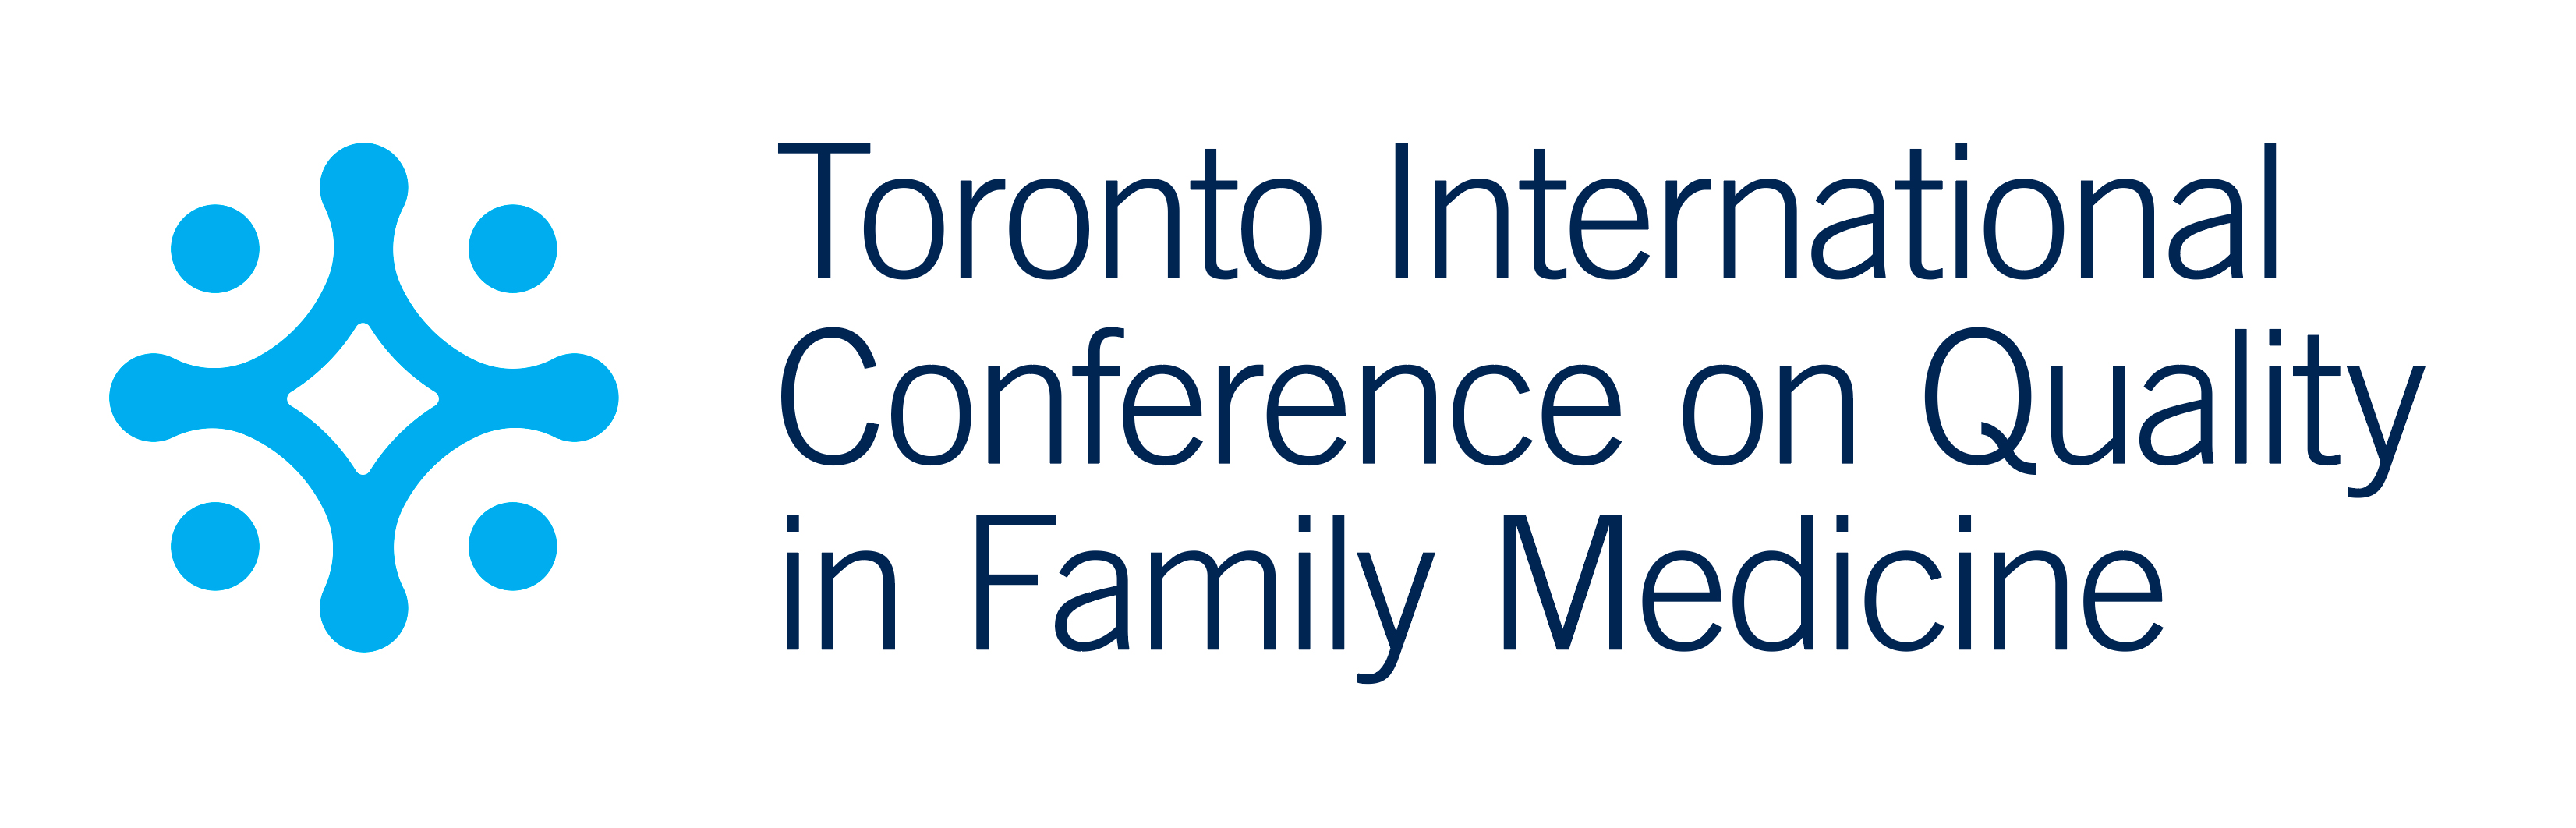 Toronto International Conference on Quality in Family Medicine Logo